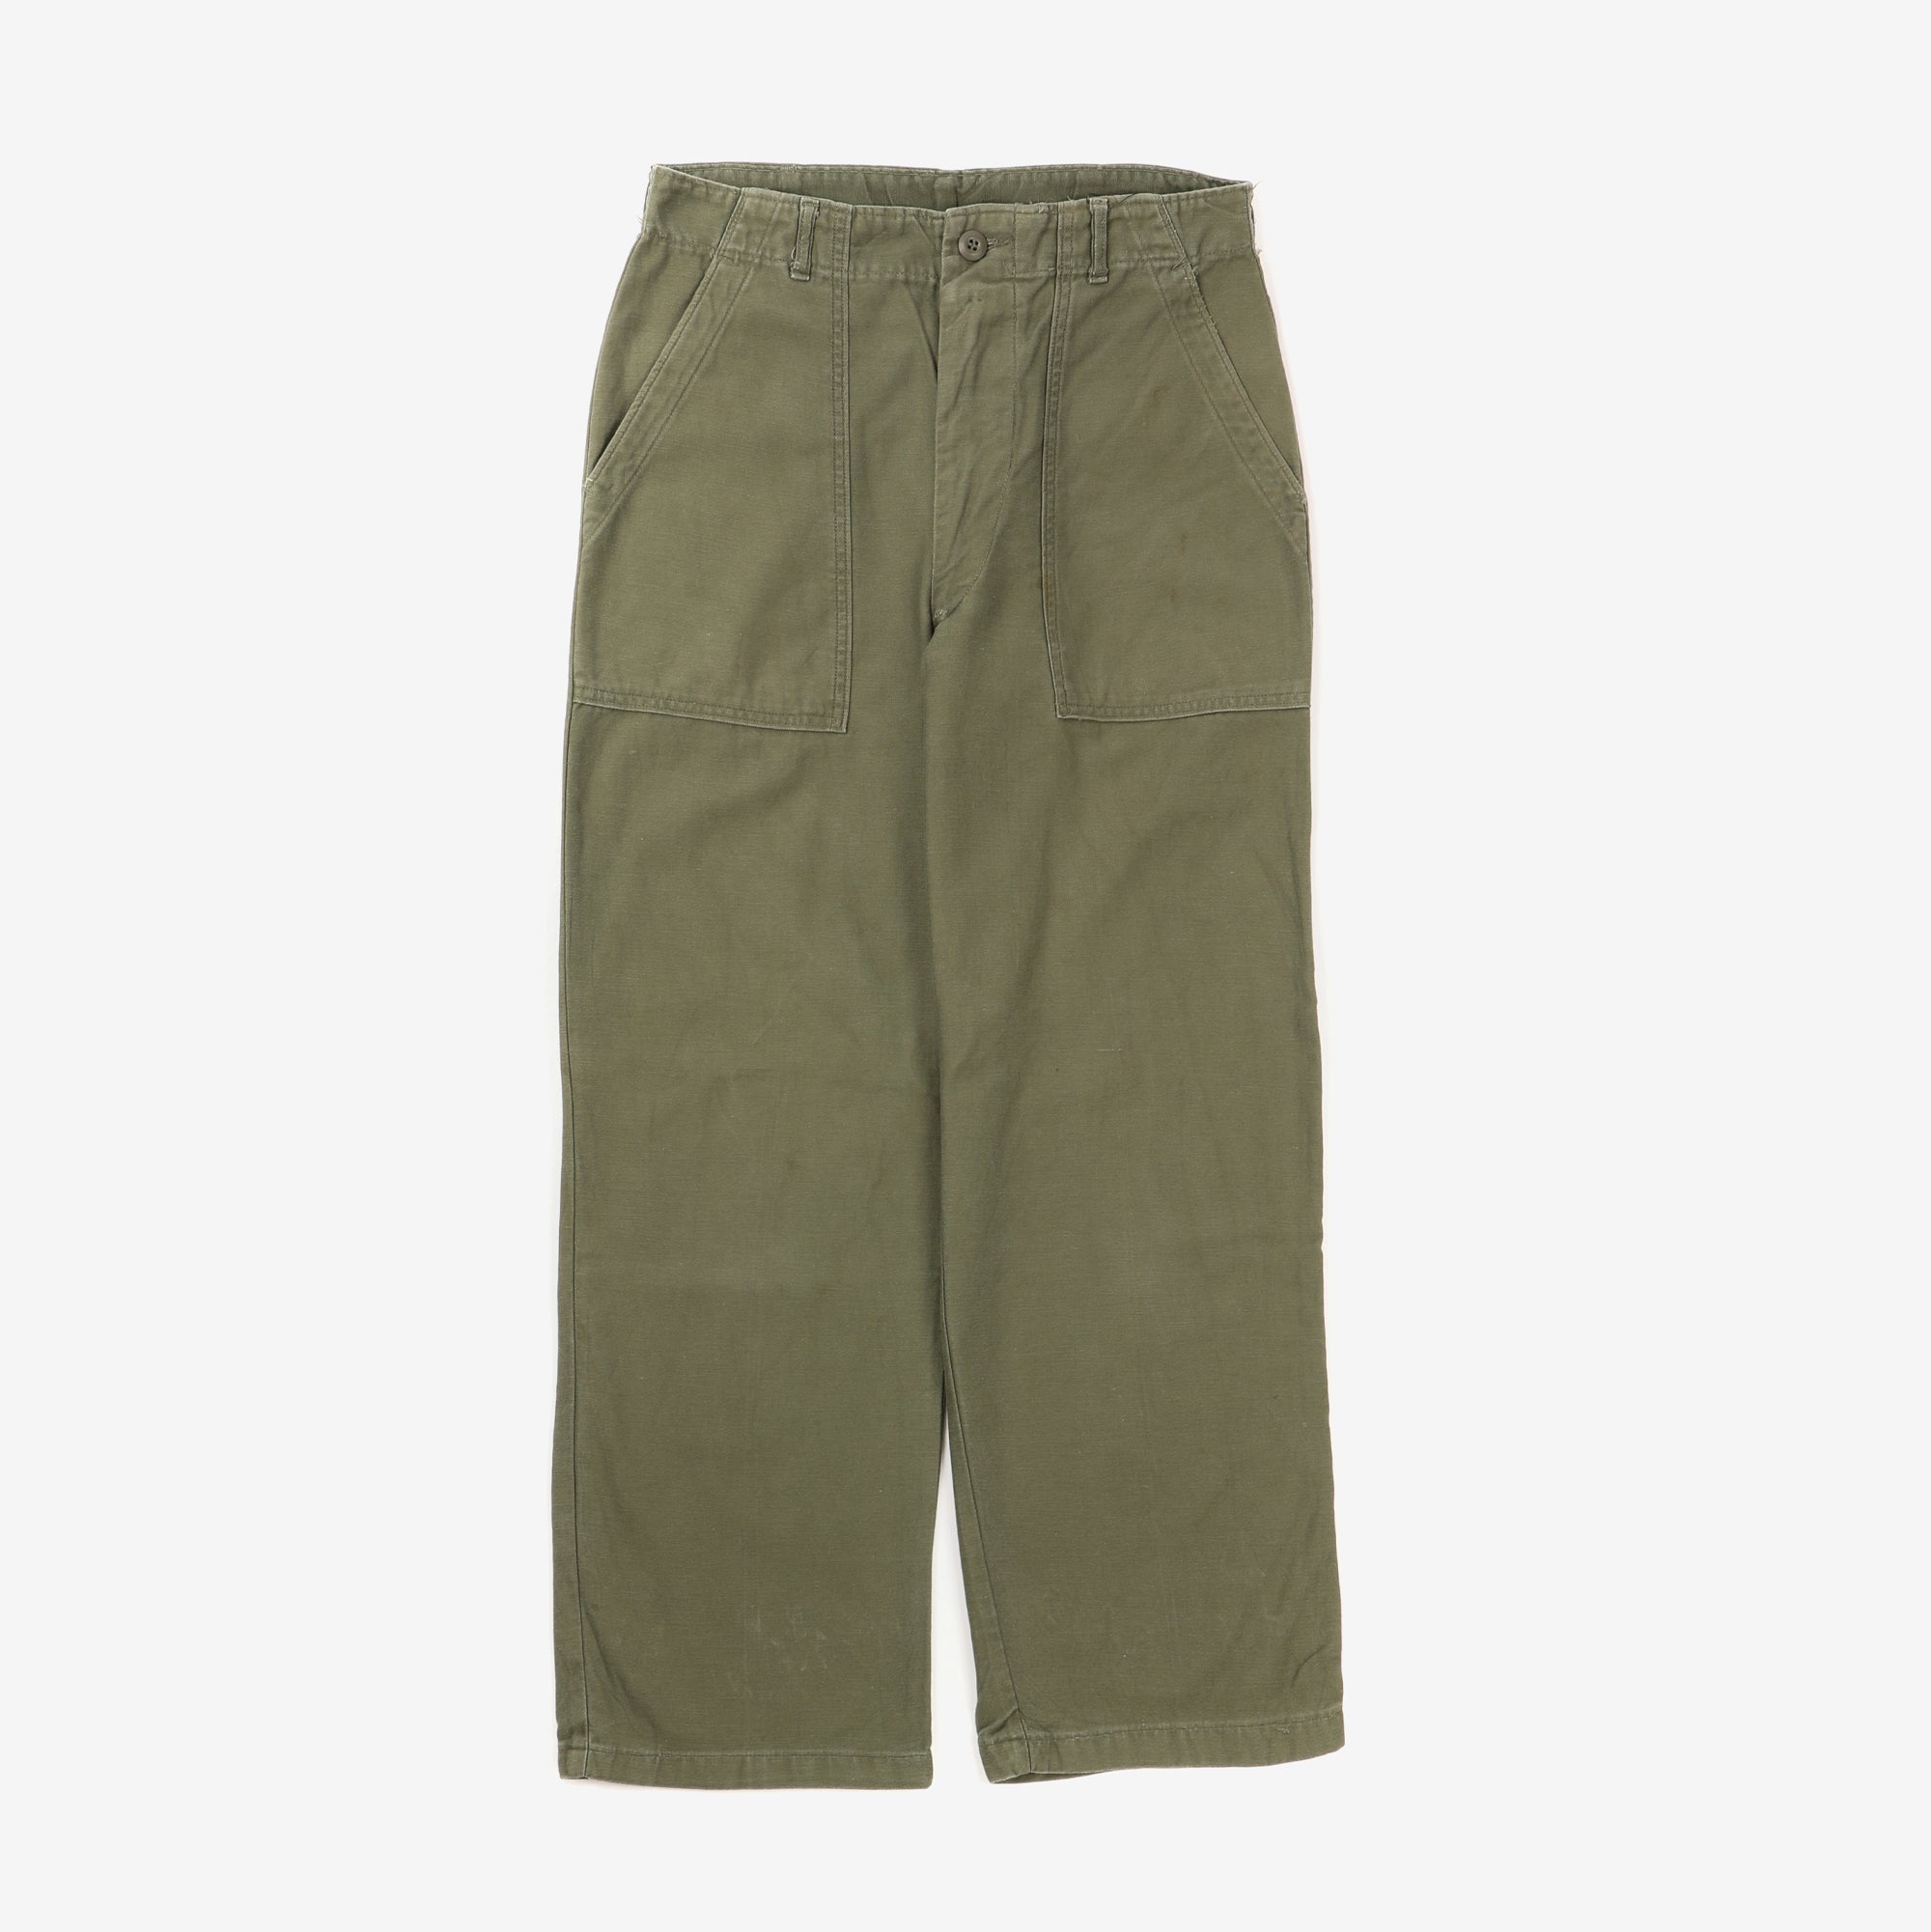 1960s U.S Army OG107 Fatigue Pants